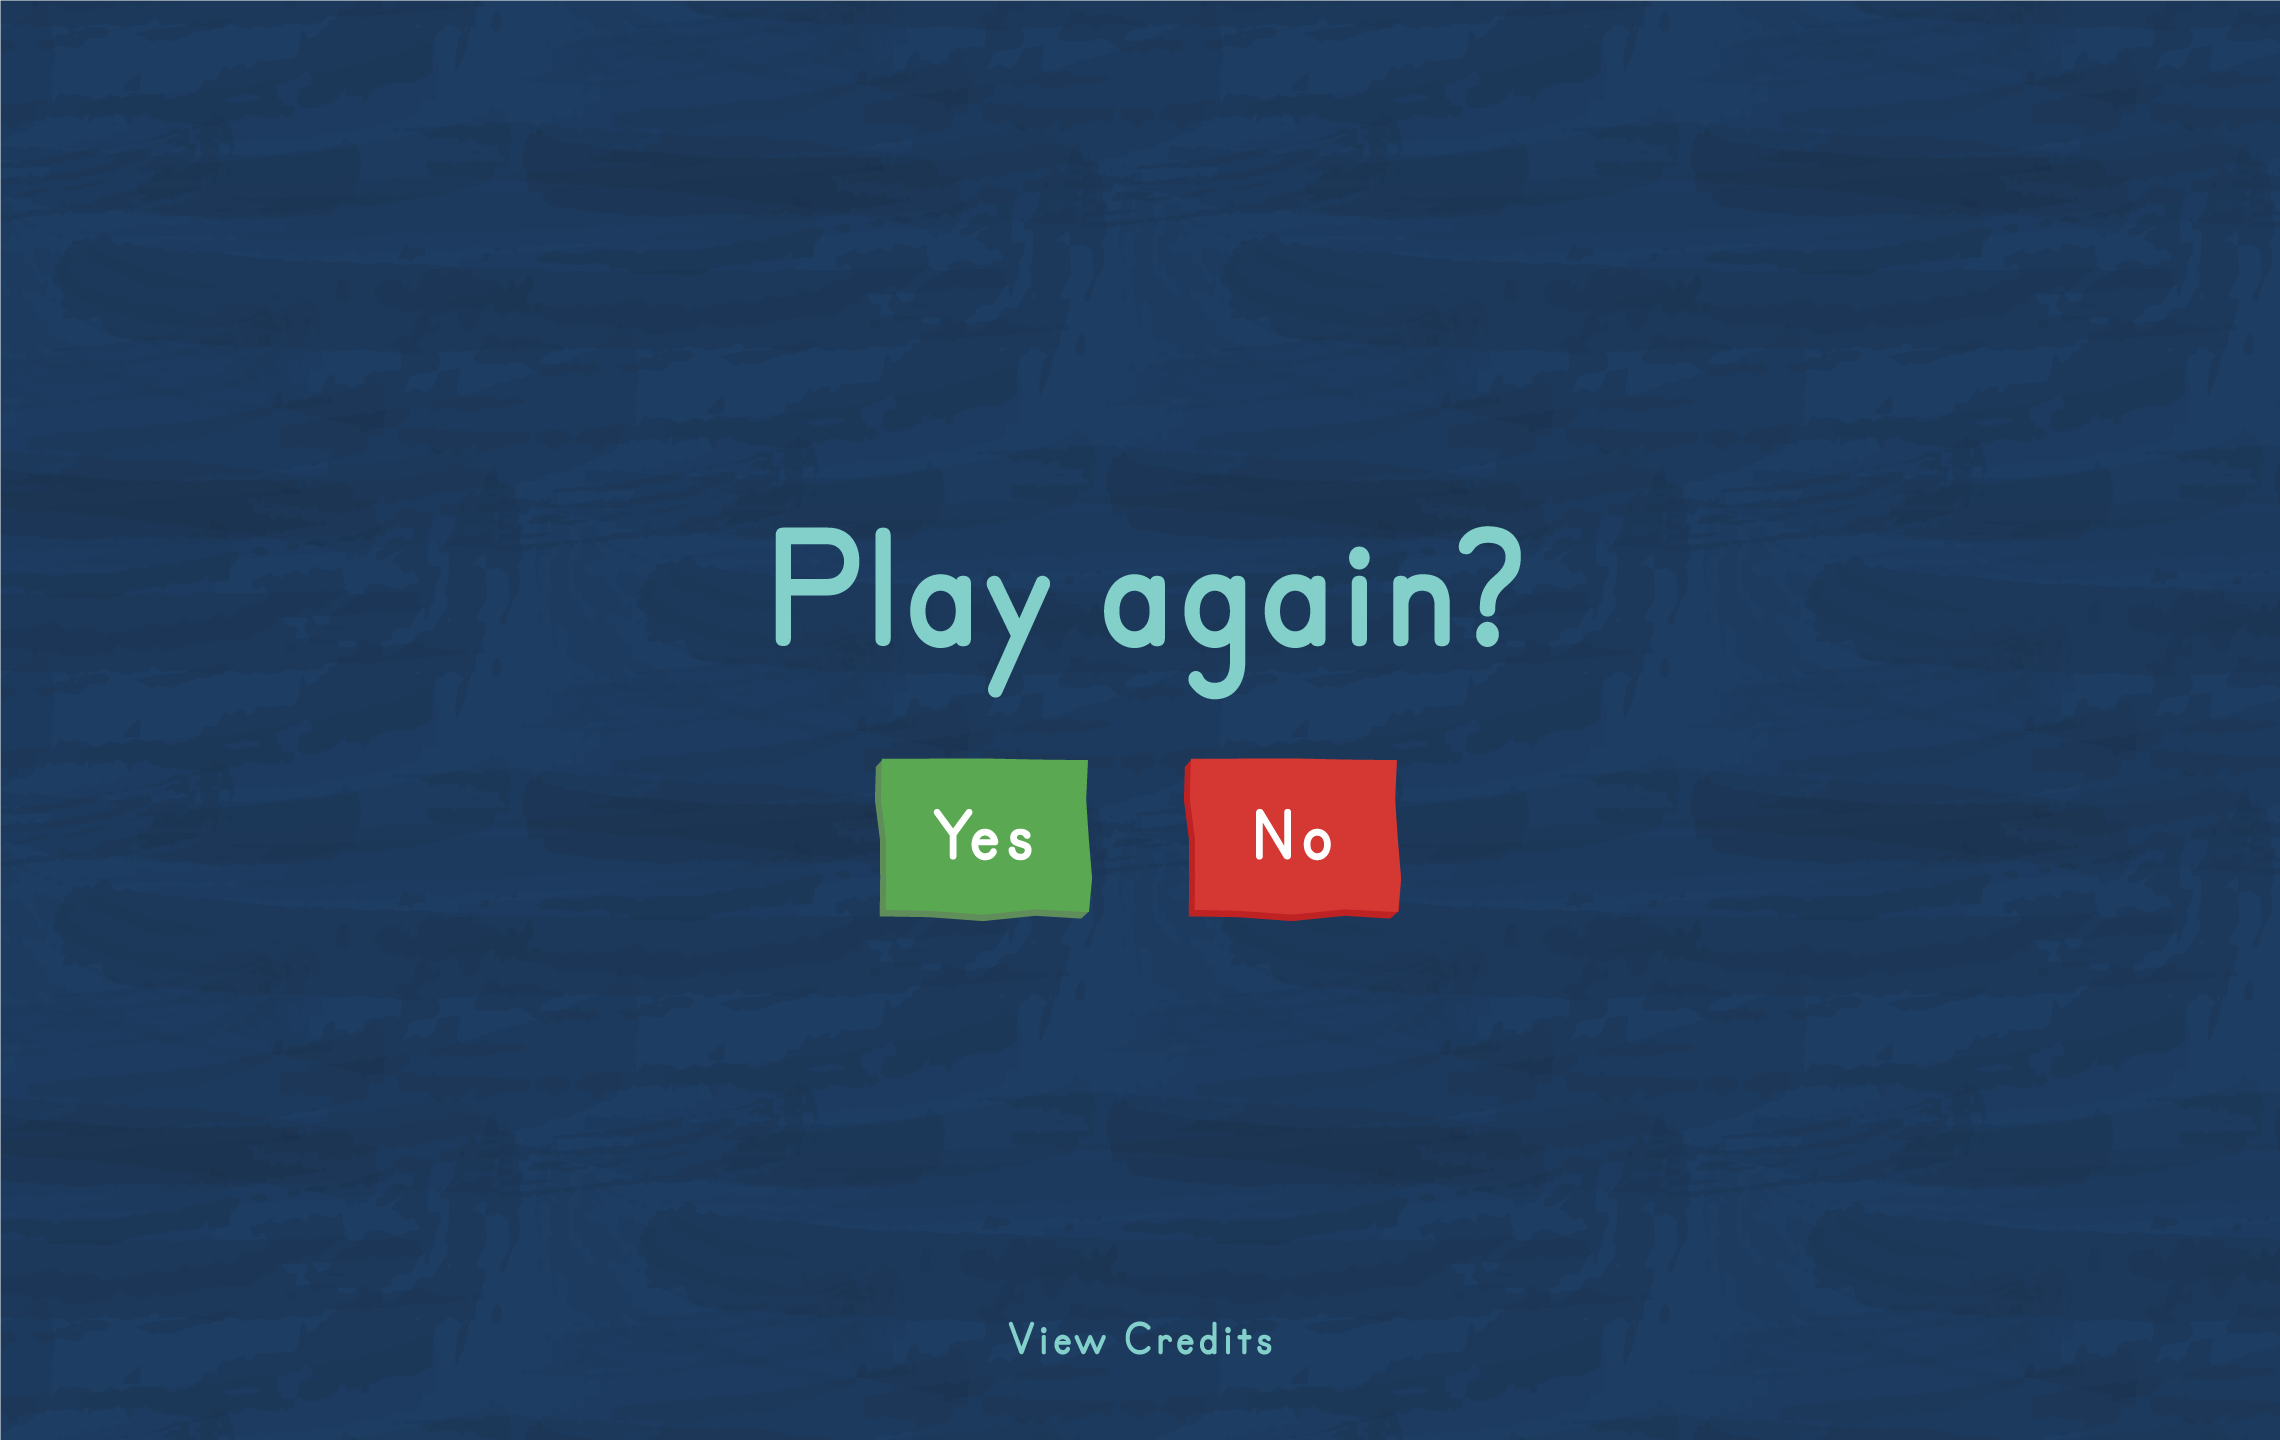 Connect4Learning's play again screen with green yes button and red no button